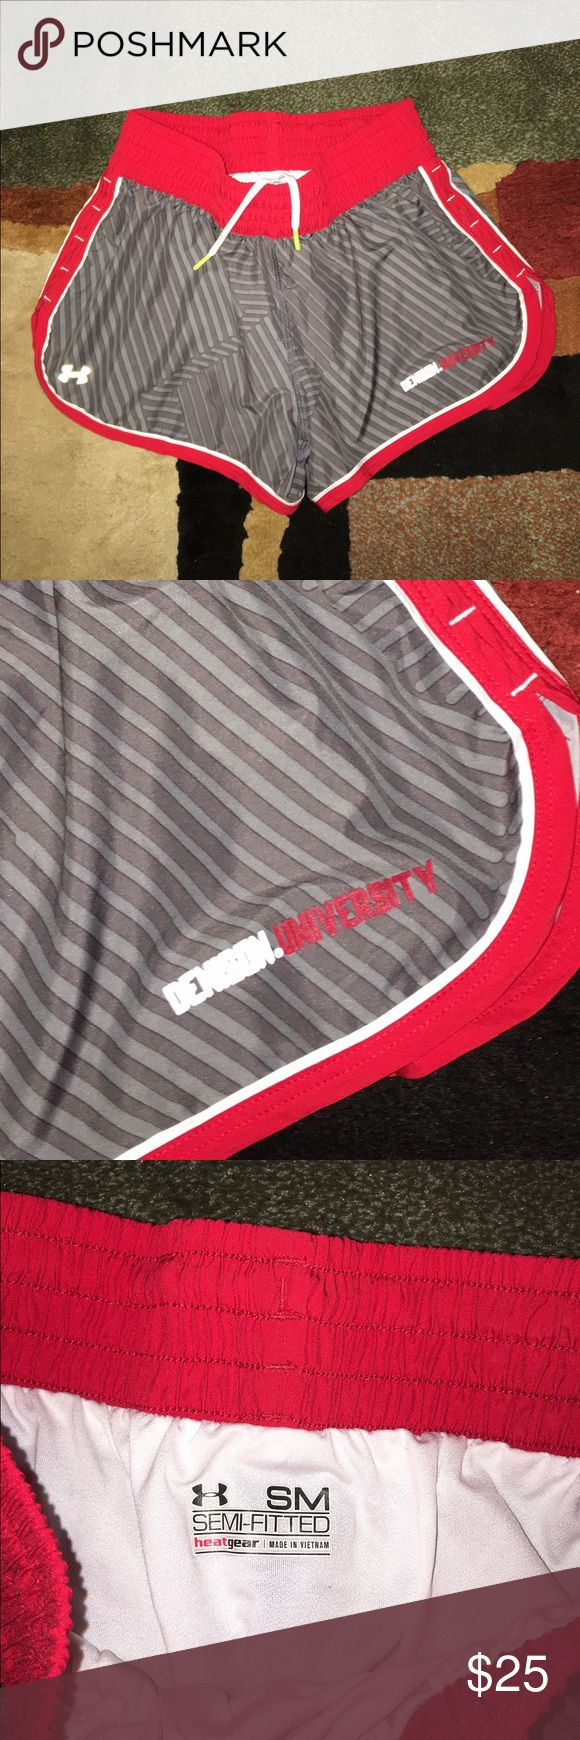 UNDER ARMOUR DENISON UNIVERSITY RUNNING SHORTS UNDER ARMOUR DENISON UNIVERSITY OF GRANVILLE OHIO RED GREY N WHITE RUNNING SHORTS WITH WIDE ELASTIC WAISTBAND N DRAWSTRING WITH WHITE UNDERGARMENTS  SM SEMI-FITTED WORN ONE TIME Under Armour Shorts